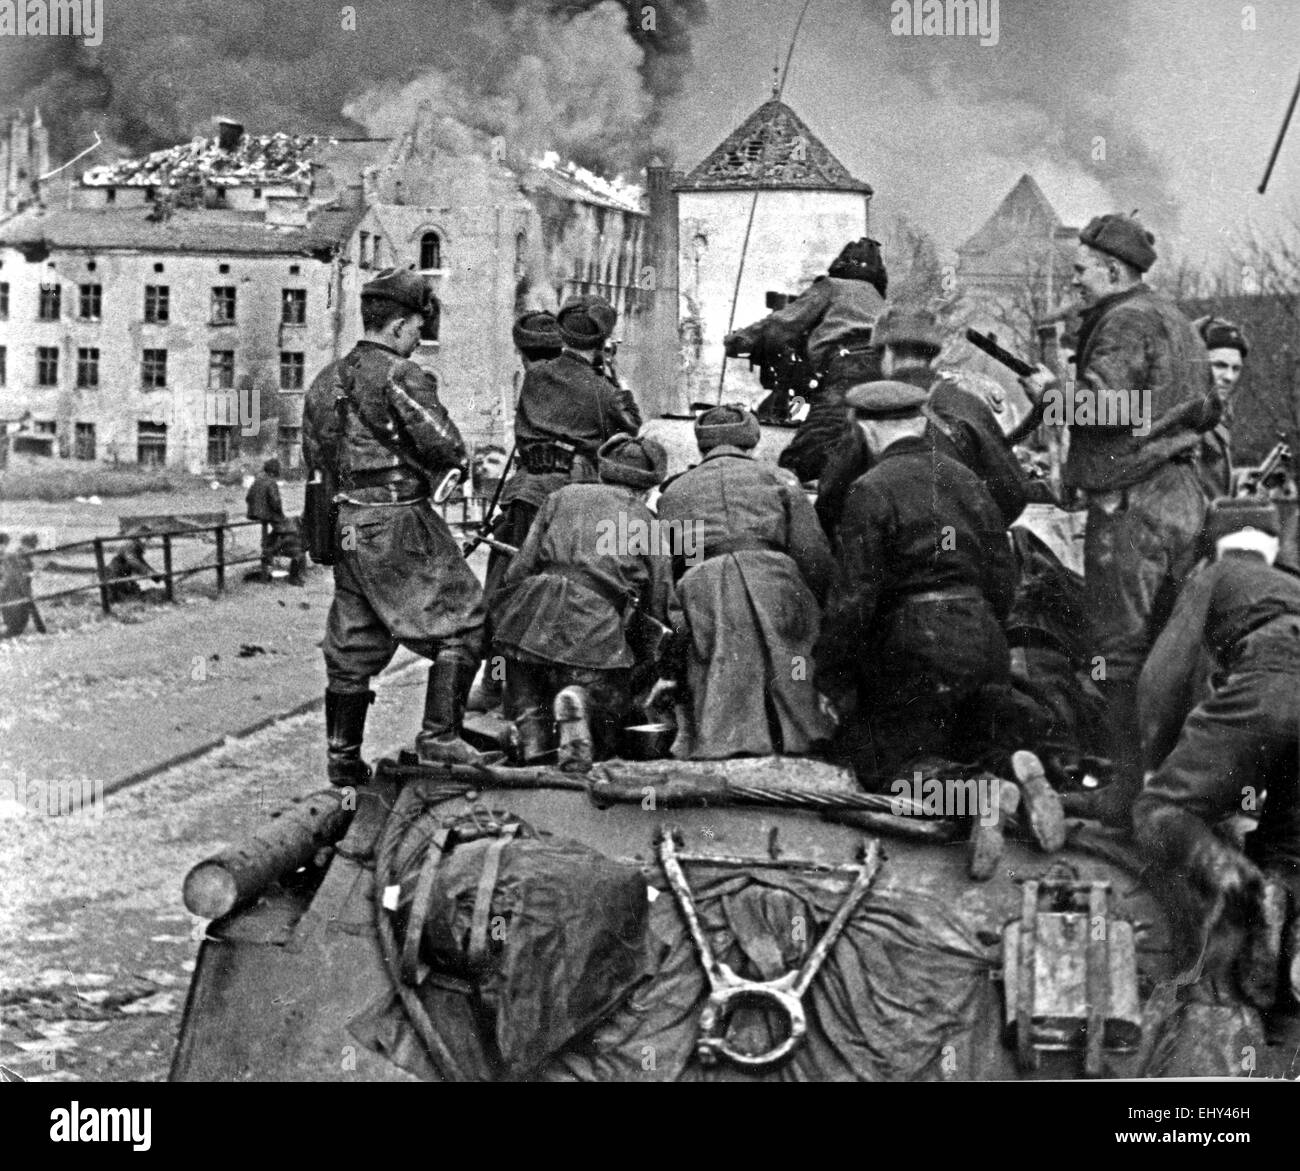 RED ARMY tank crew in Danzig, Poland, in March 1945 Stock Photo